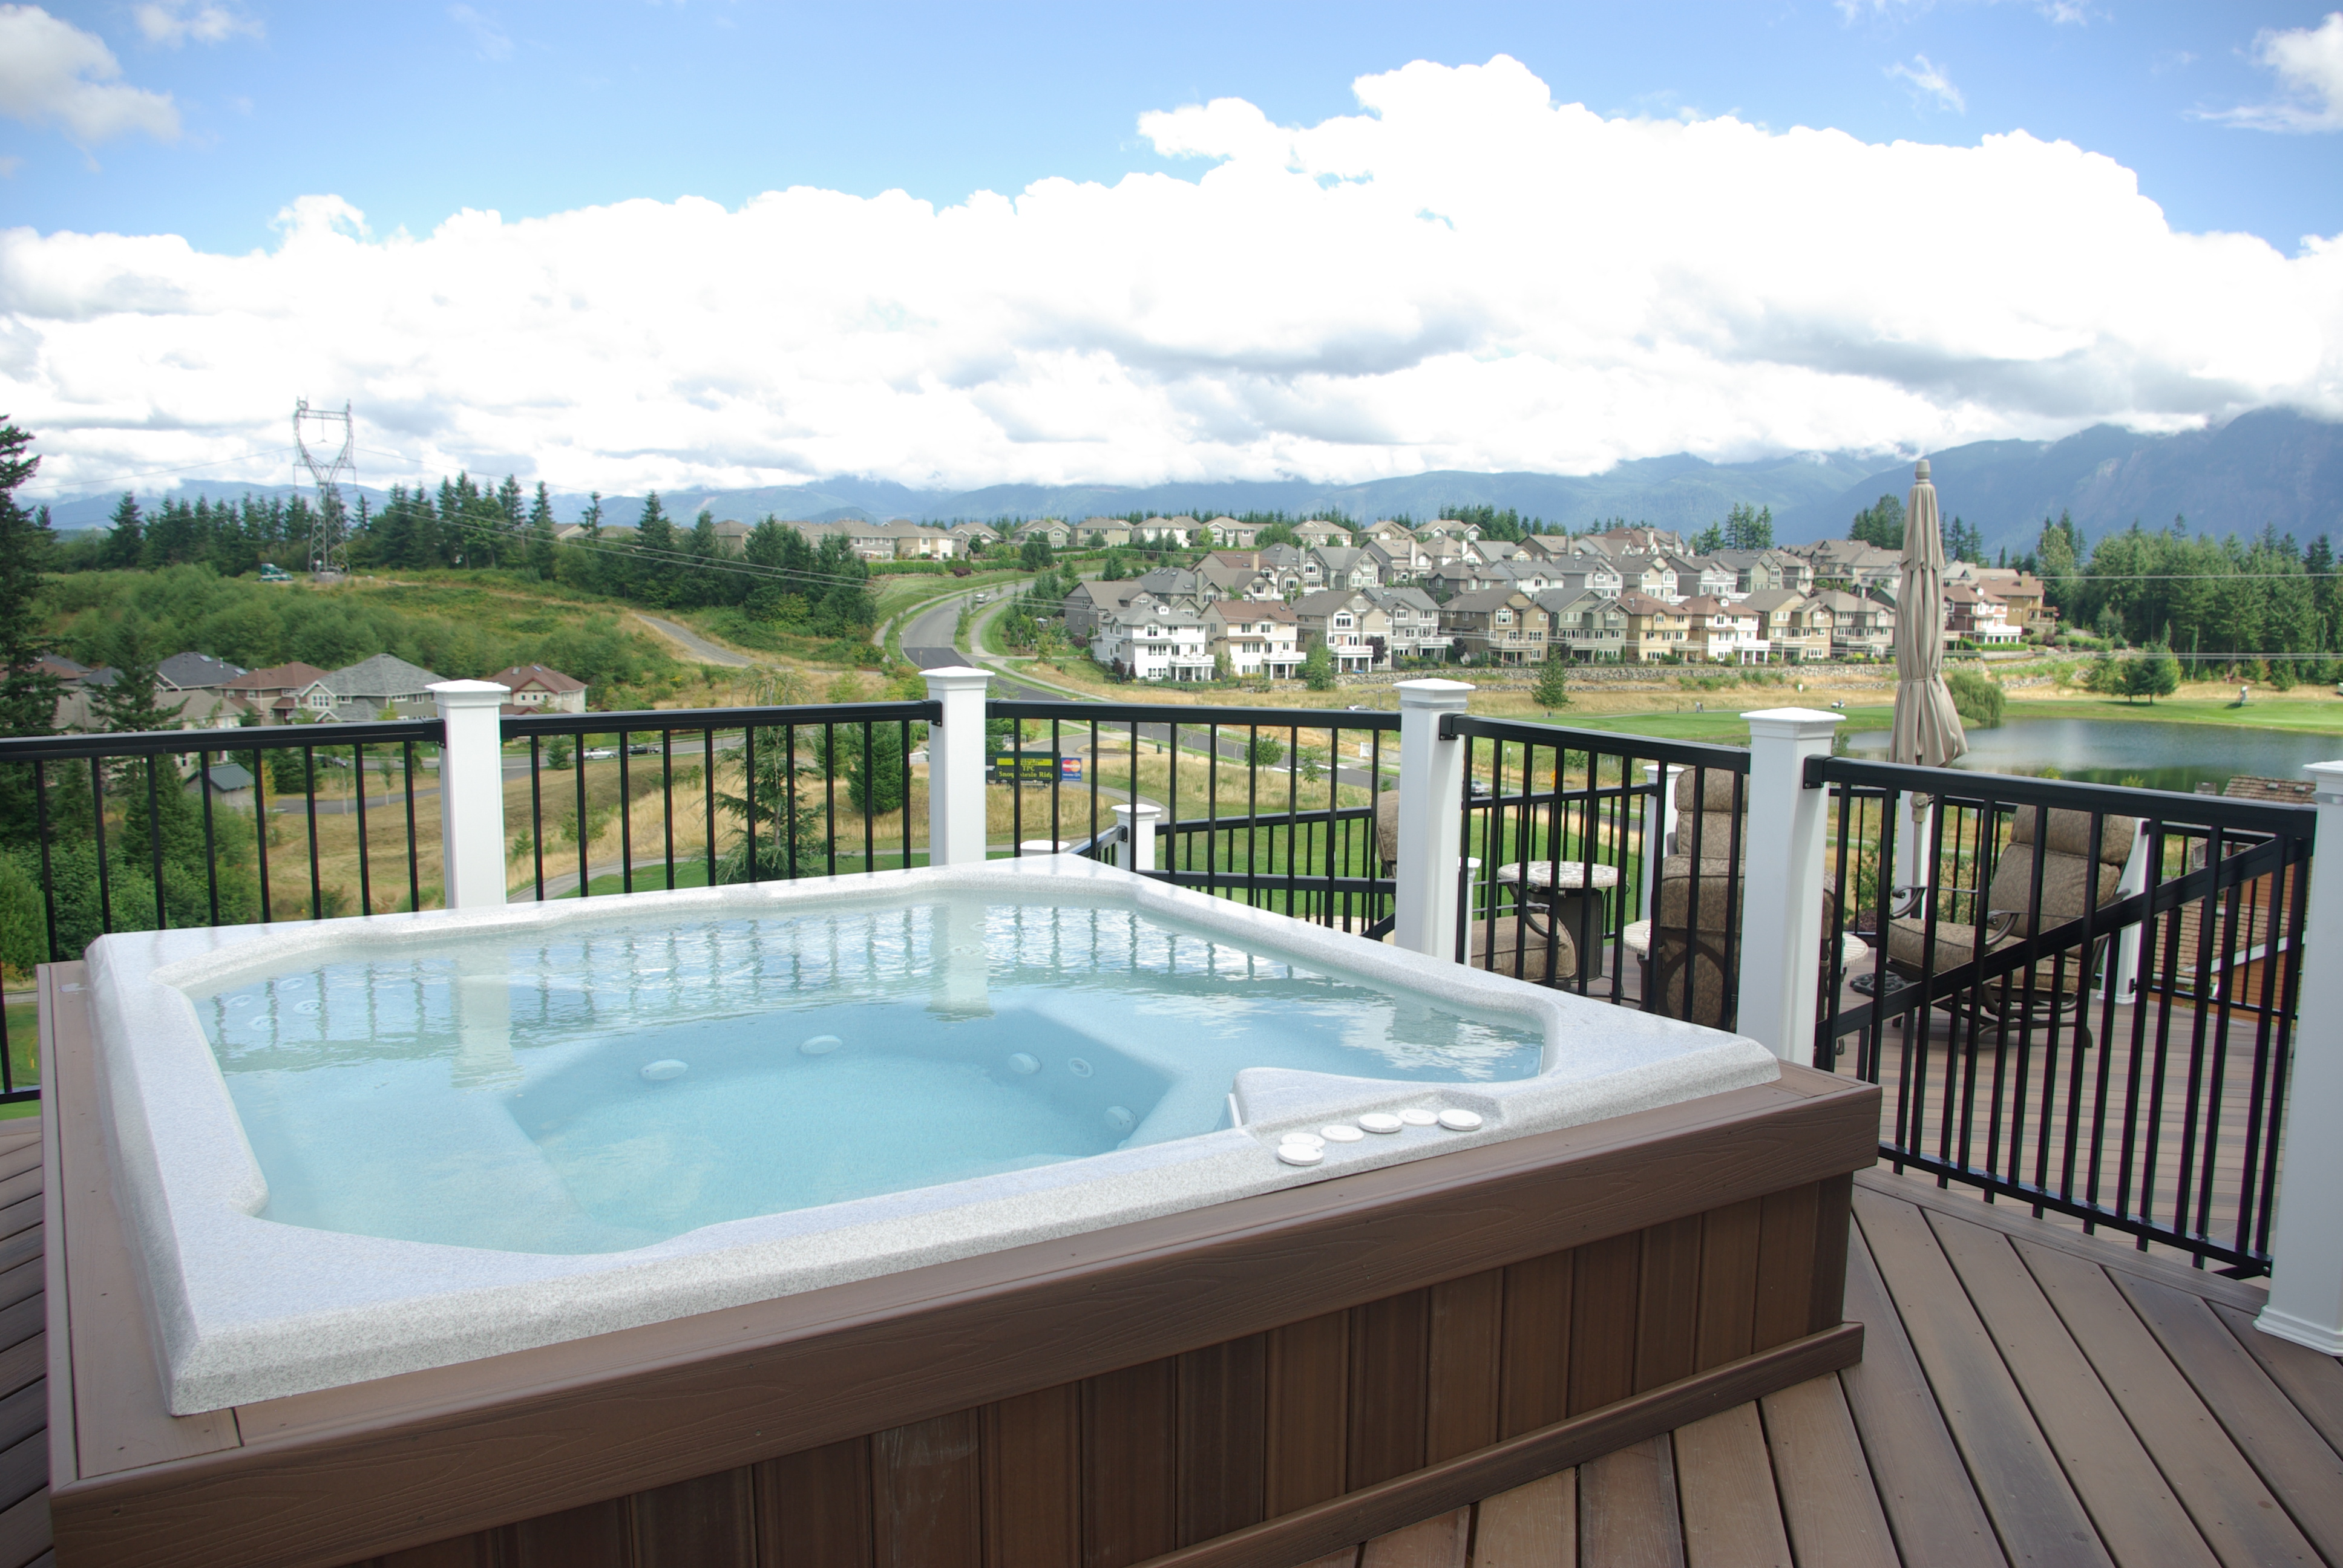 Hot Tub and Spa Sales, Repairs, and Servicing